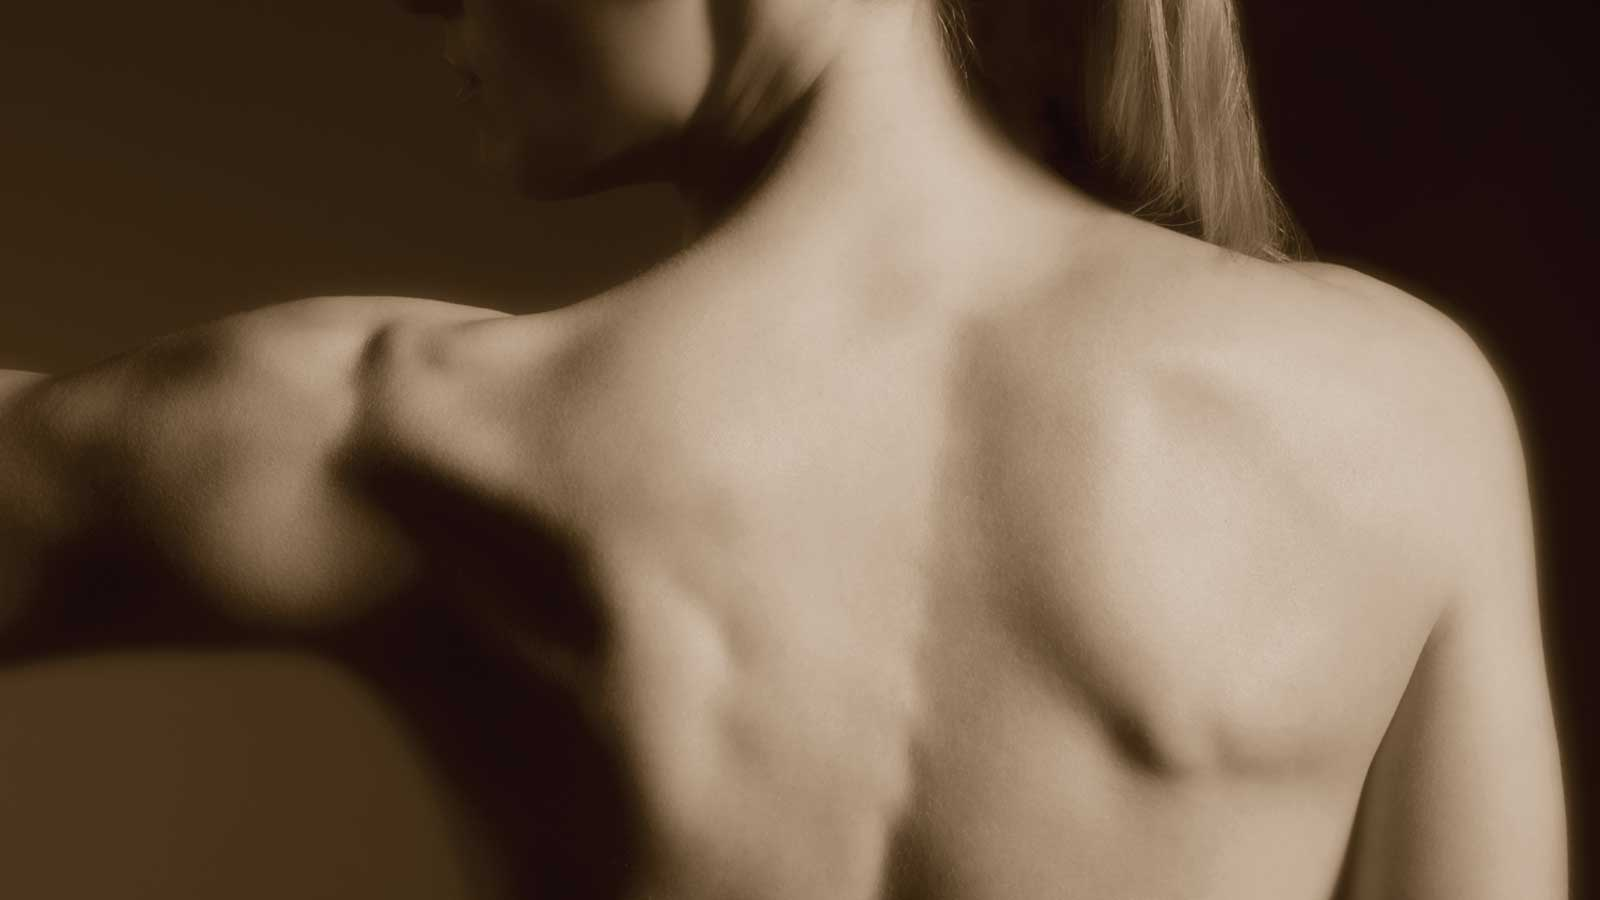 A woman's well-muscled back